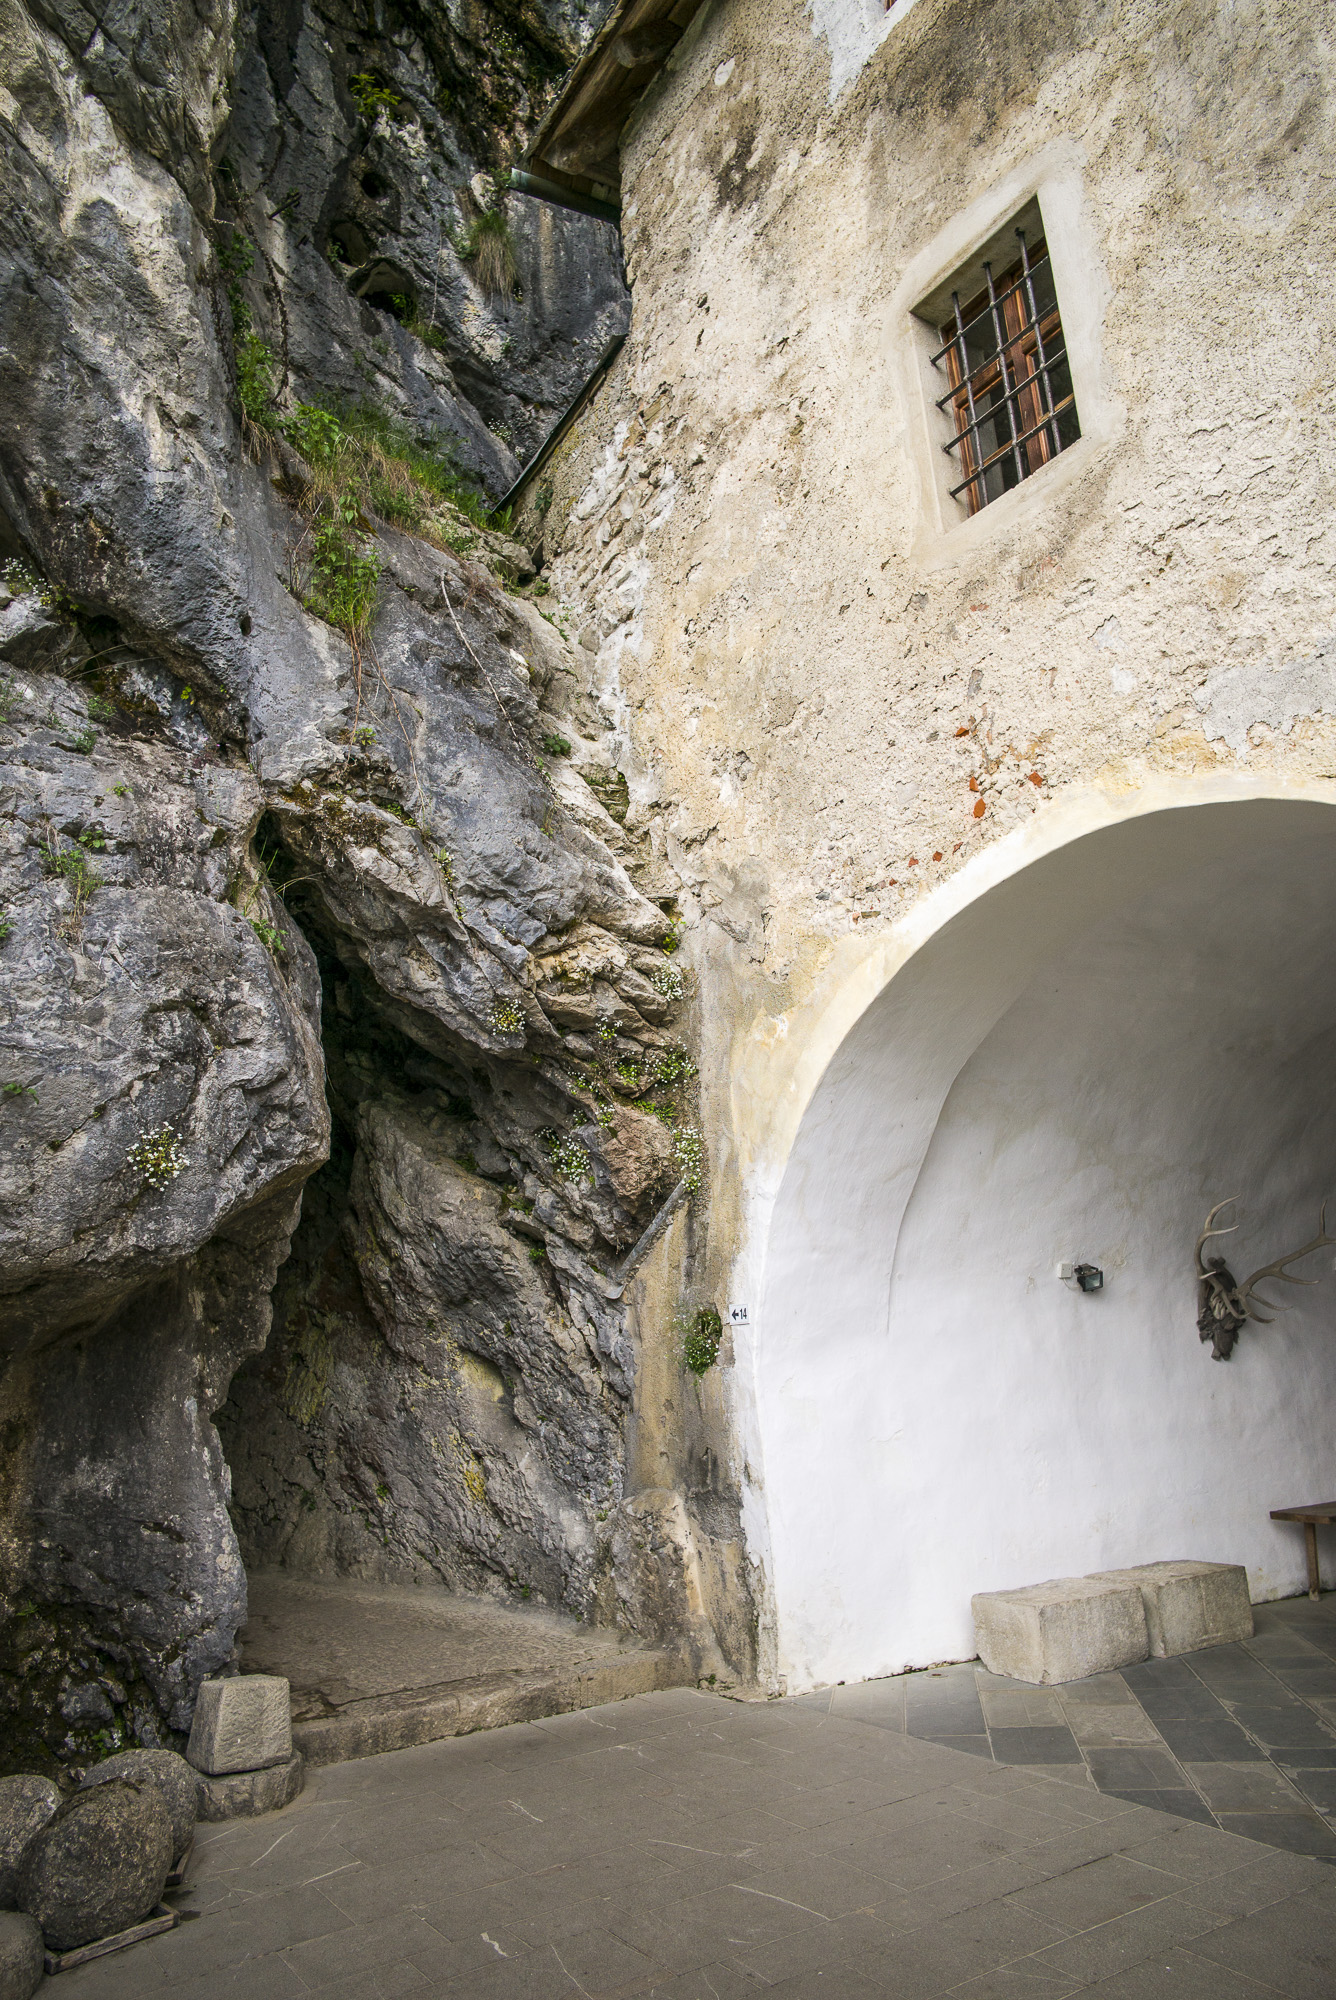 Predjama cave and castle